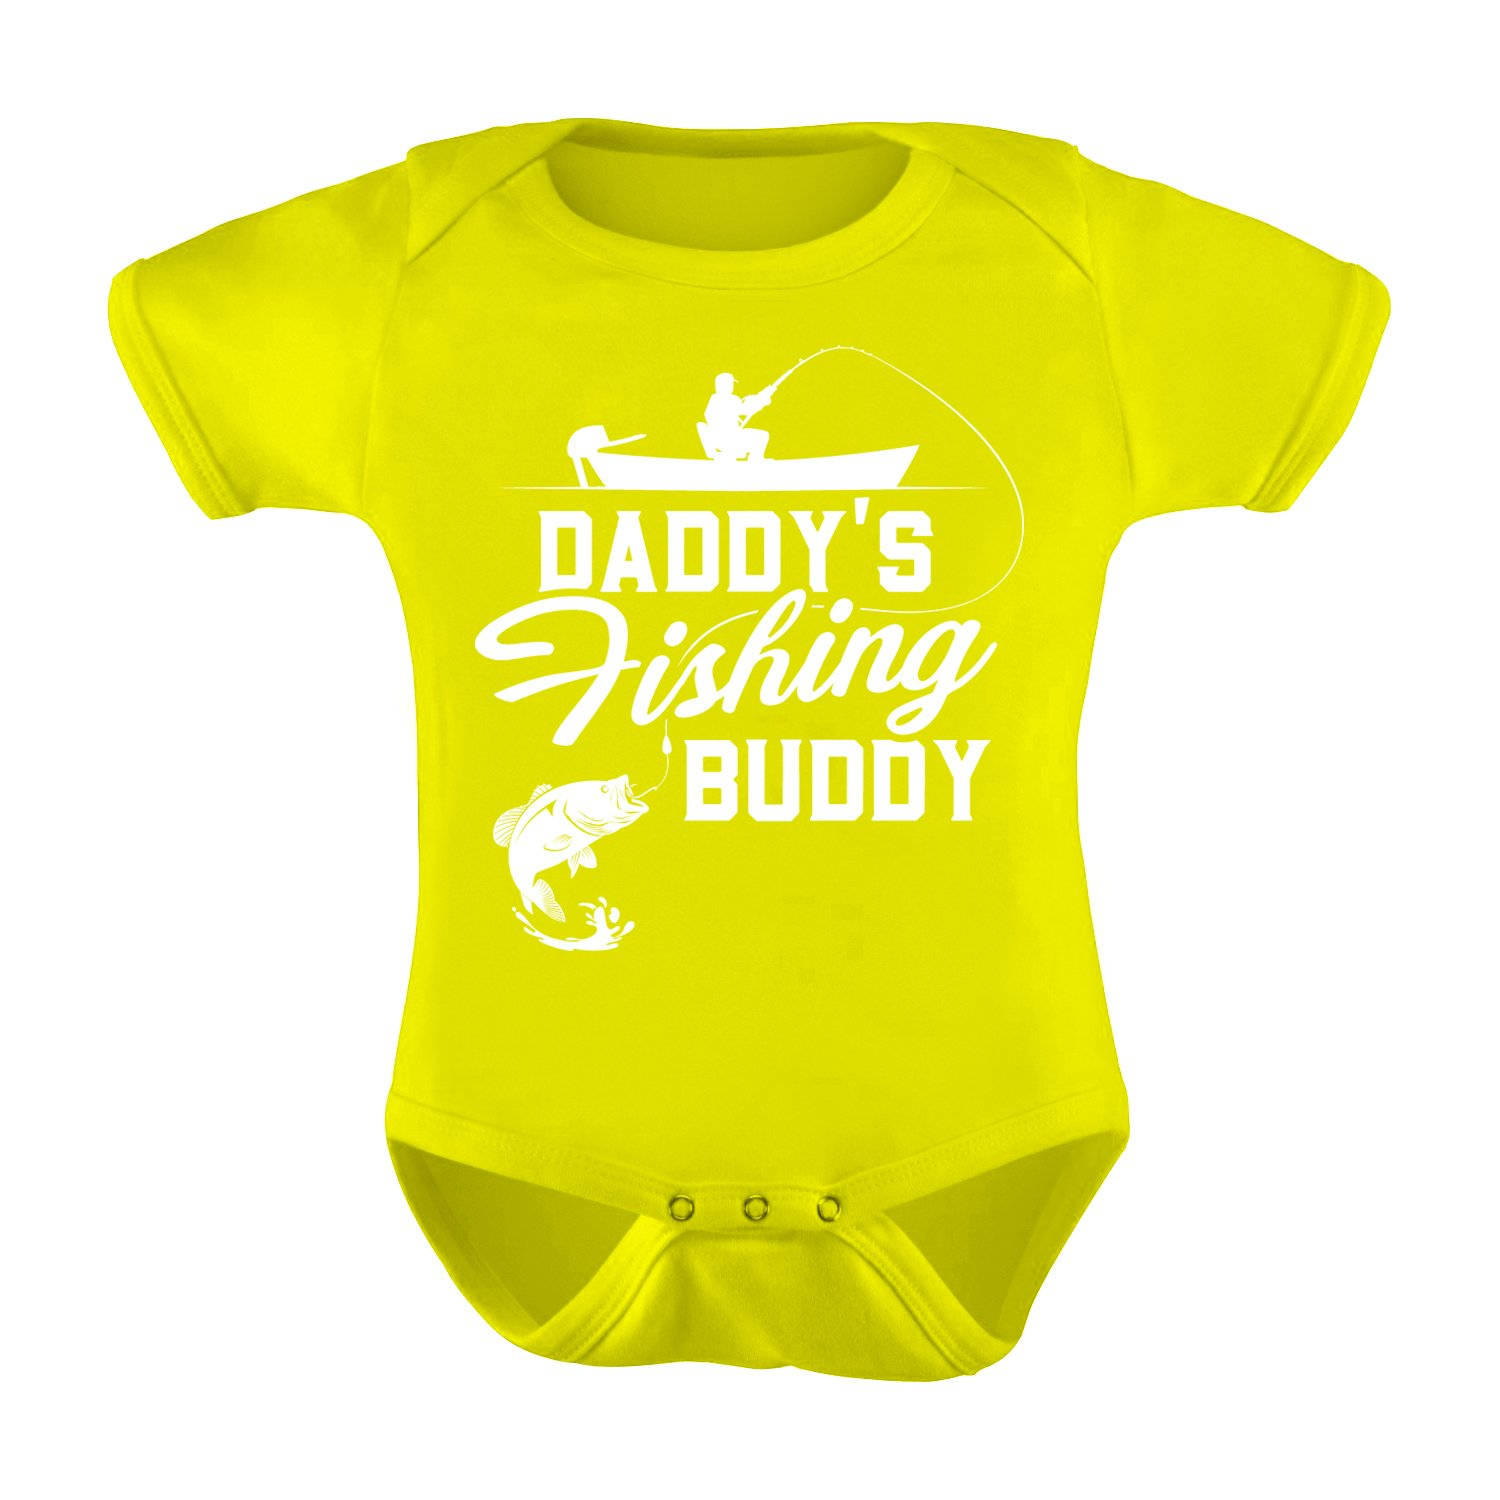 Fresh Cotton Daddys Fishing Buddy Infant Baby Romper